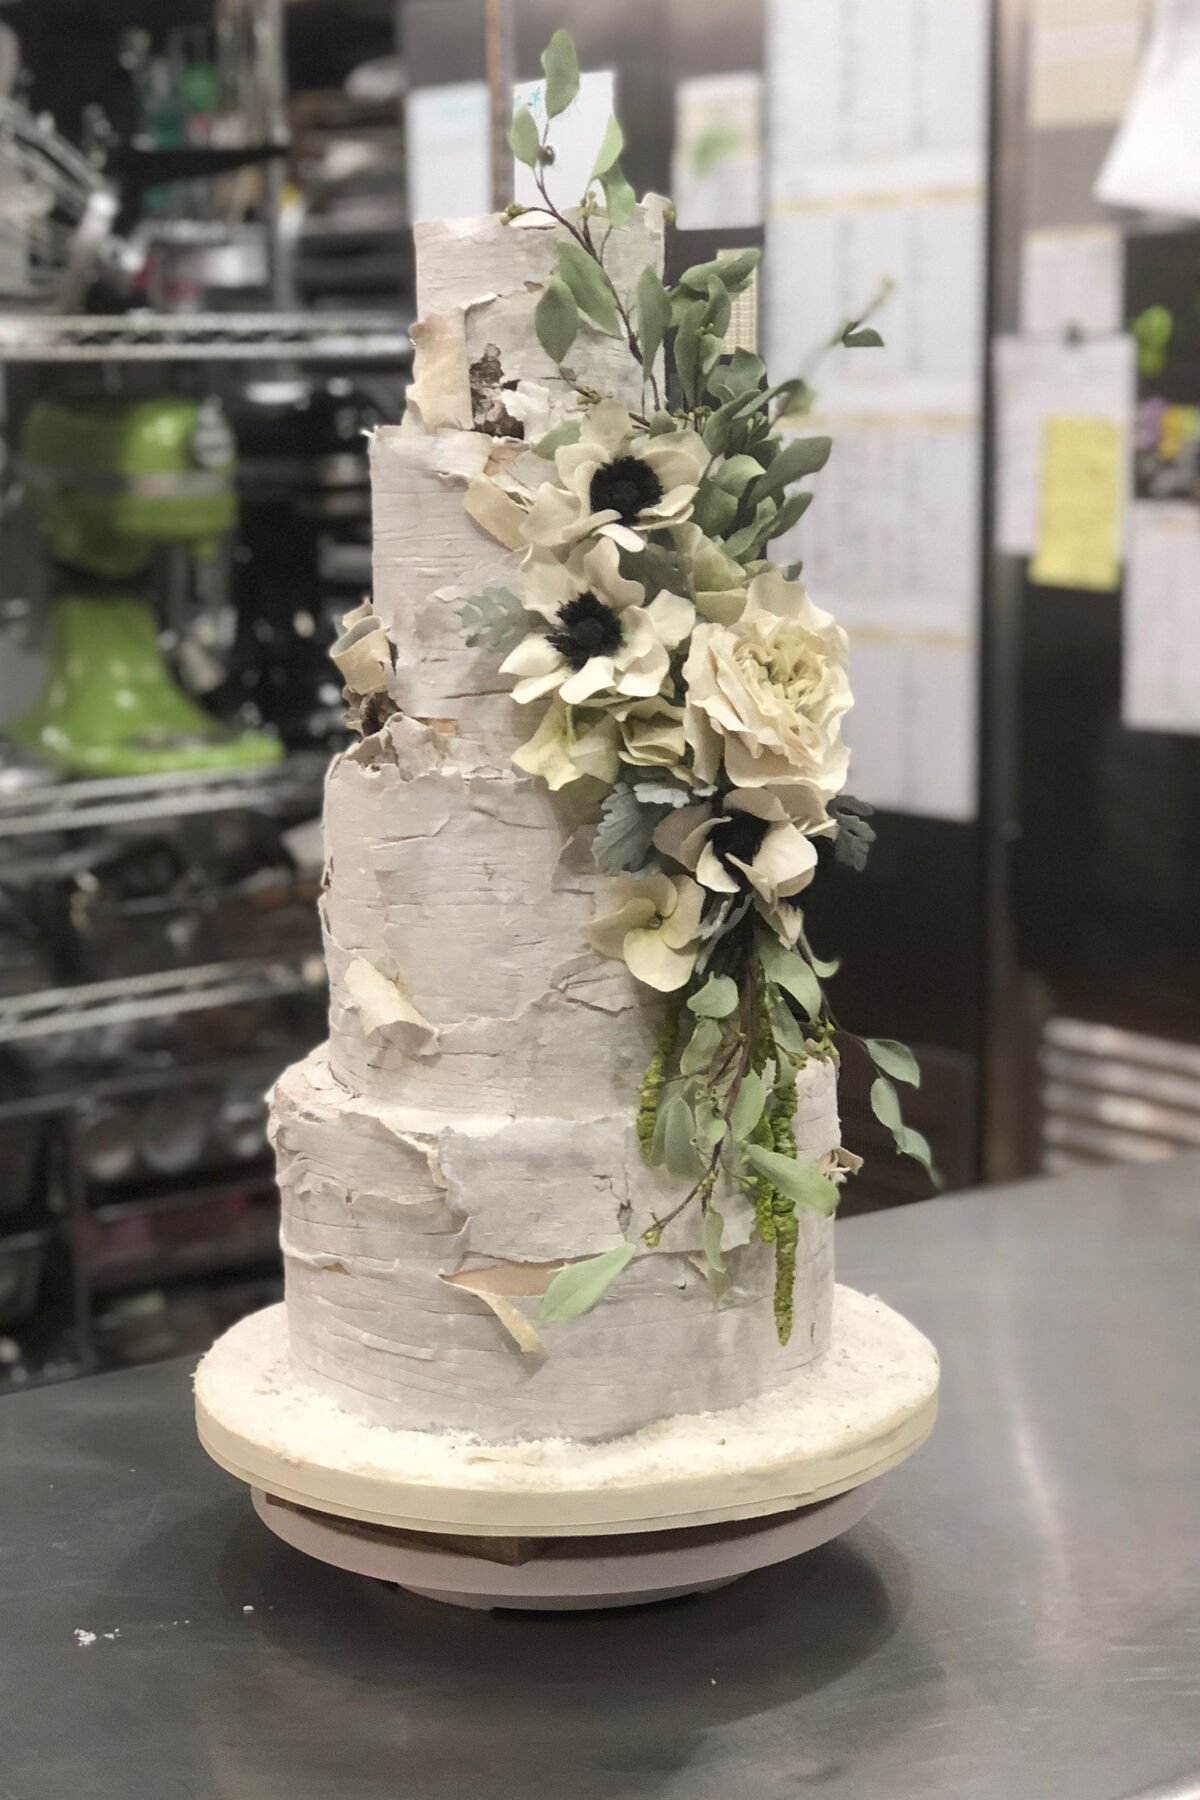 Birch tree wedding cake by Madison Lee's Cakes. Courtesy of Madison Lee's Cakes.